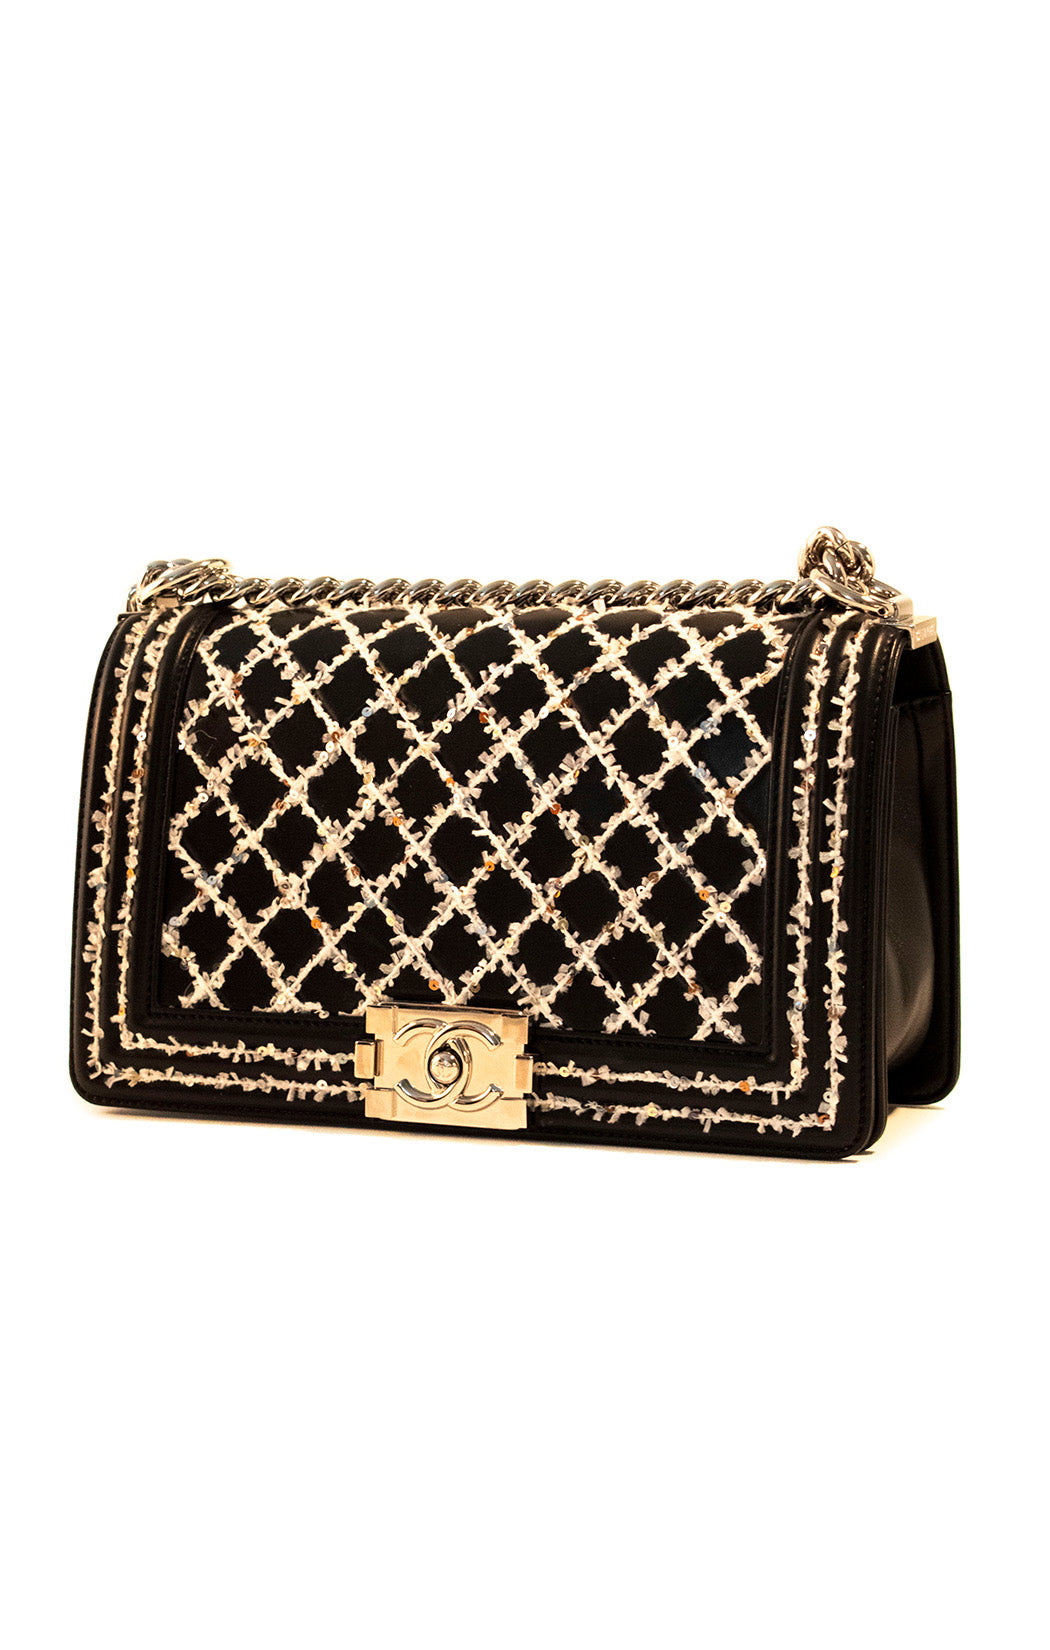 "Front view of CHANEL Handbag Size: 10"" W, 6"" H, 3.5"" D"